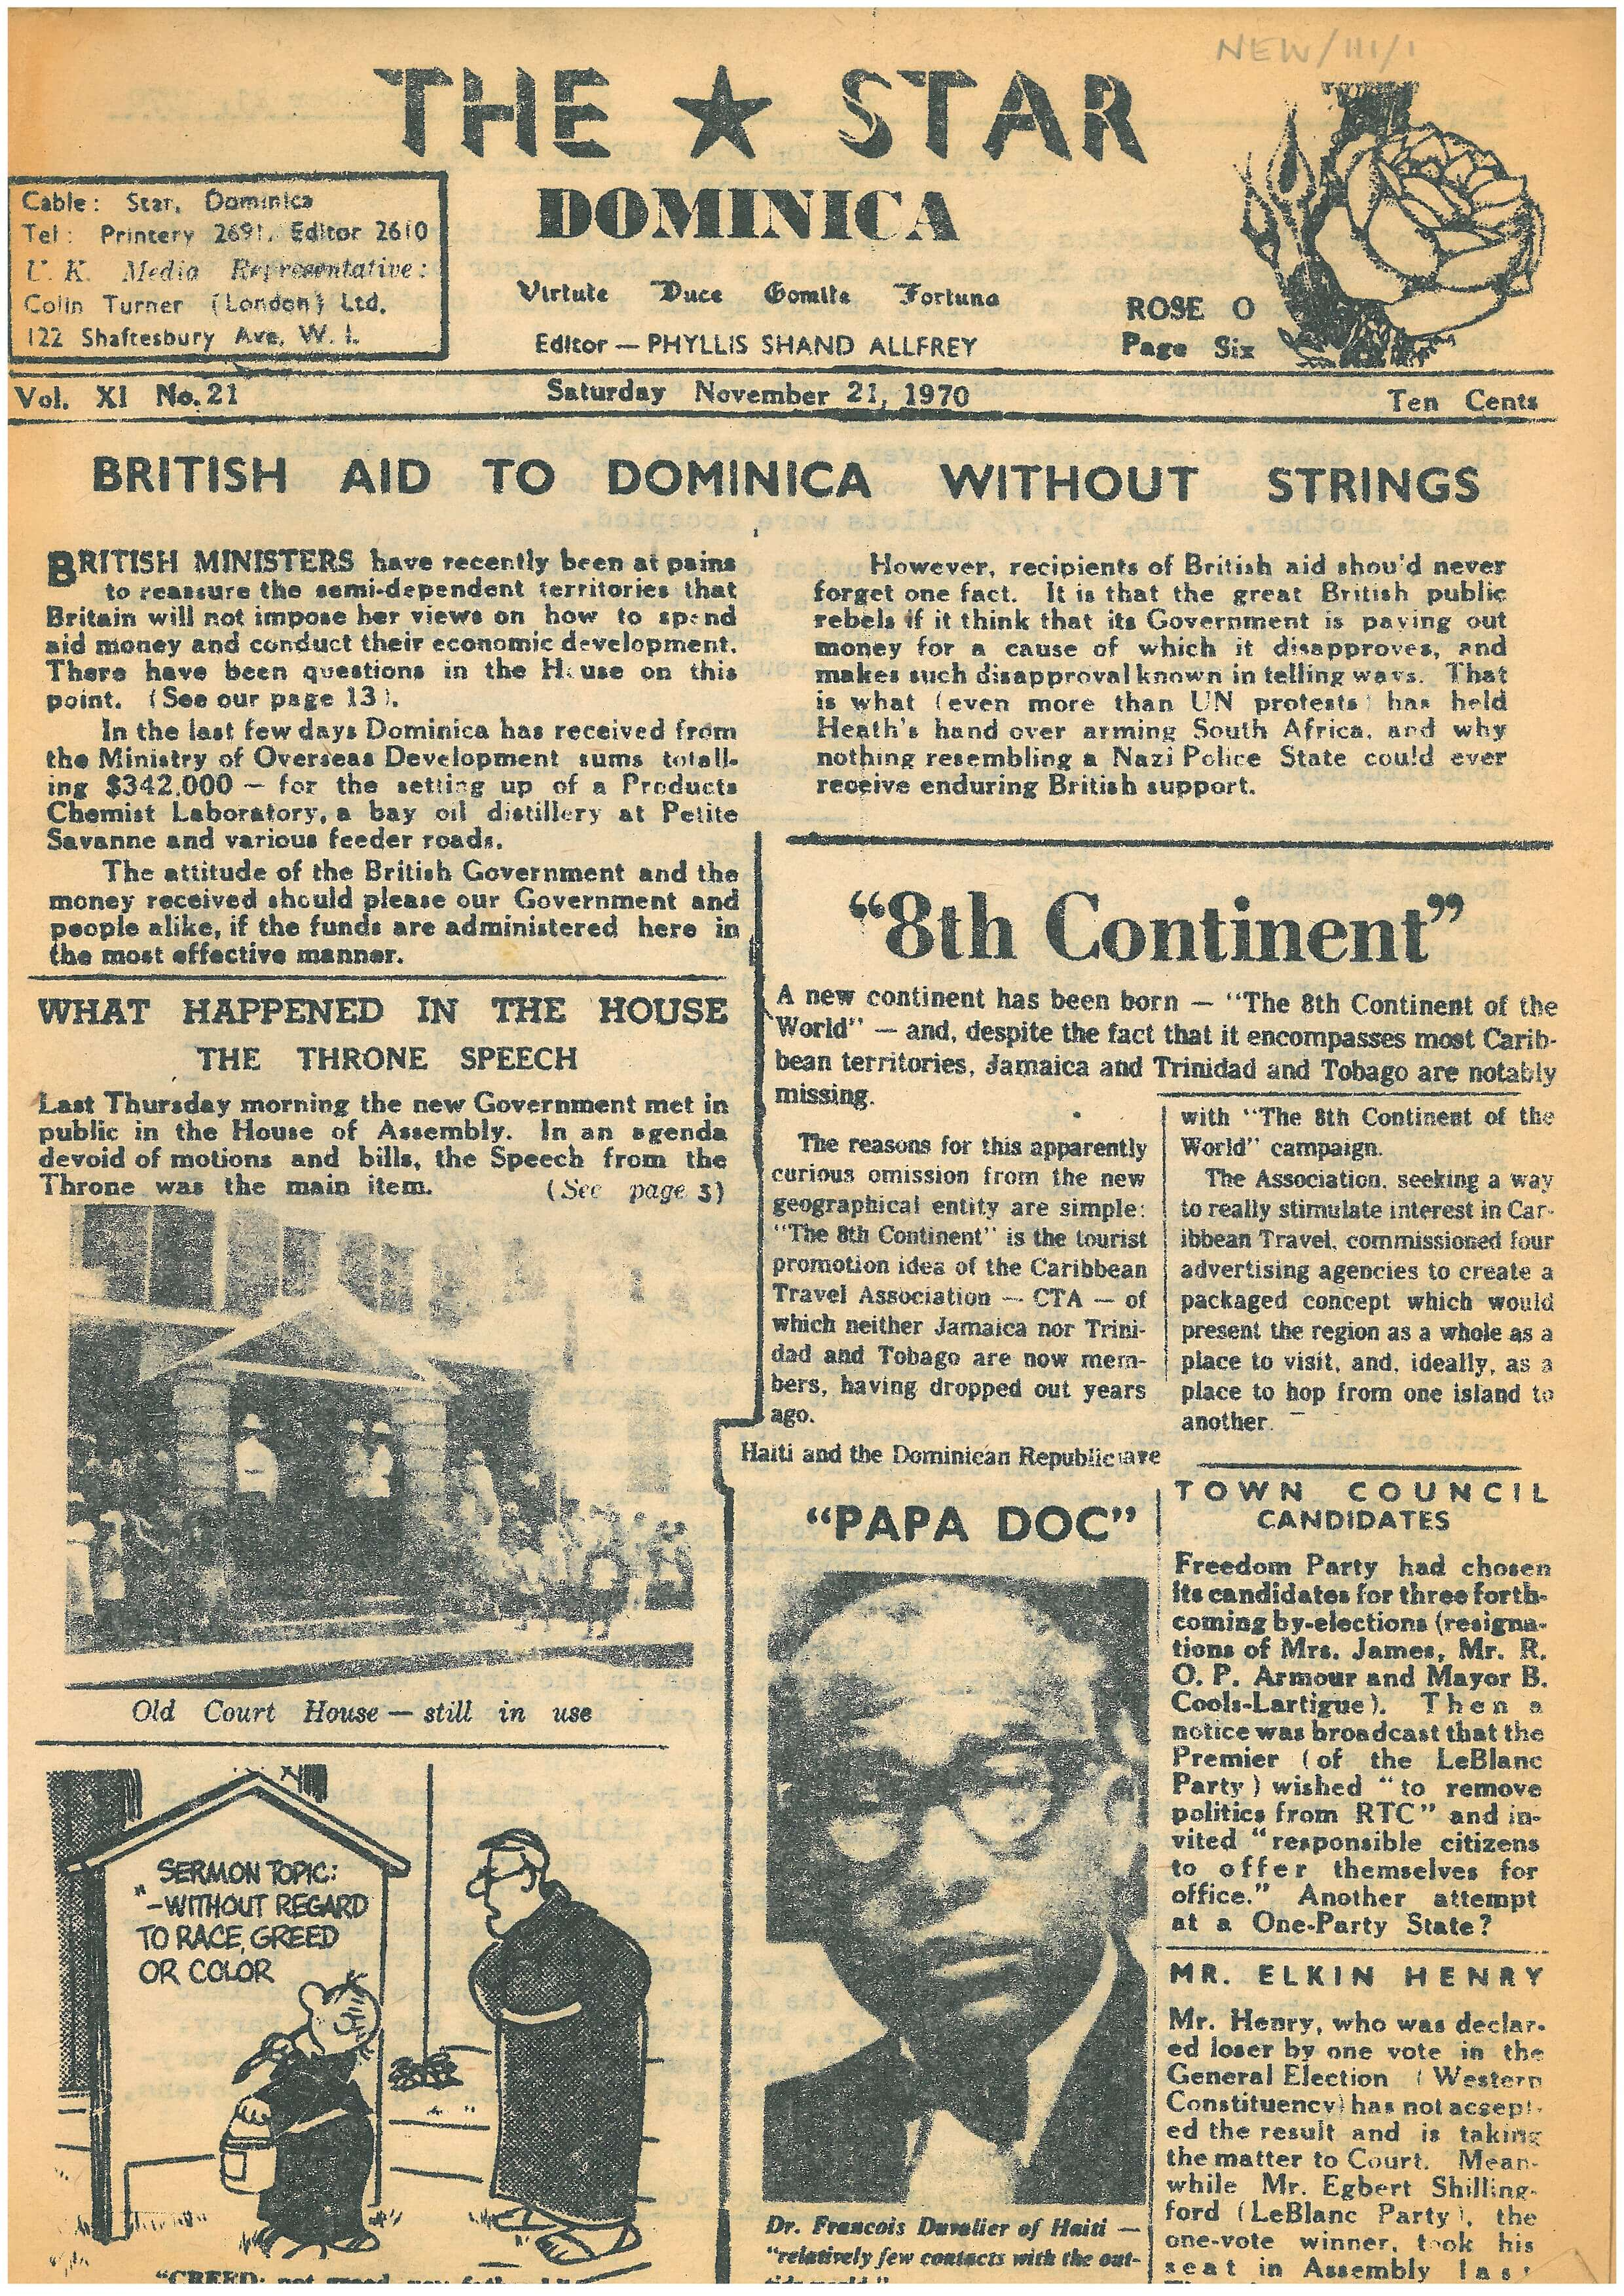 Front cover of the newspaper, with the headline 'British Aid to Dominica Without Strings'.